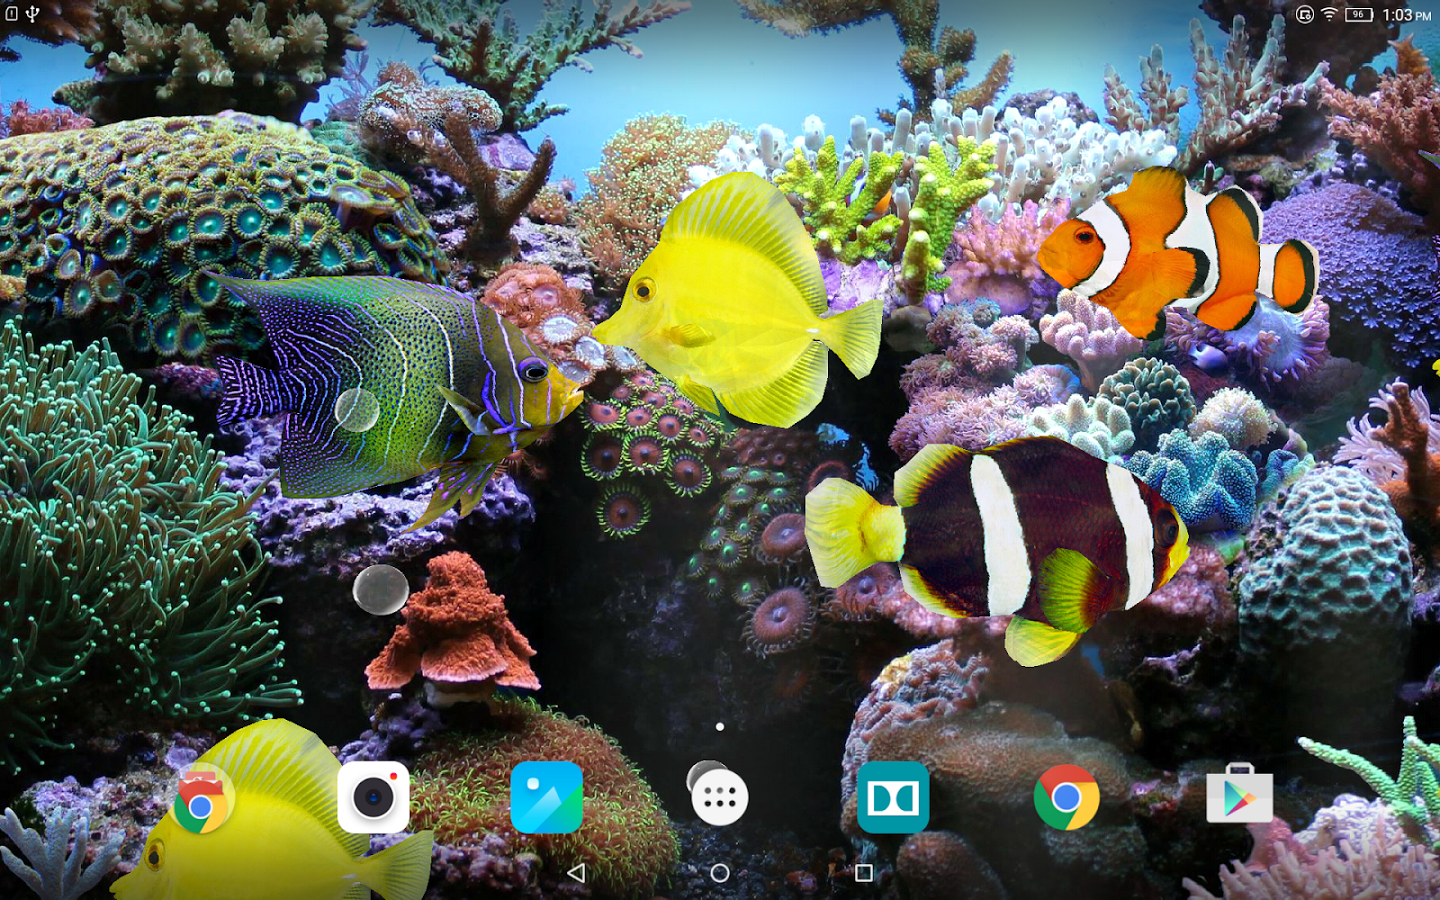 Coral Fish 3D Live Wallpaper App Ranking And Store Data